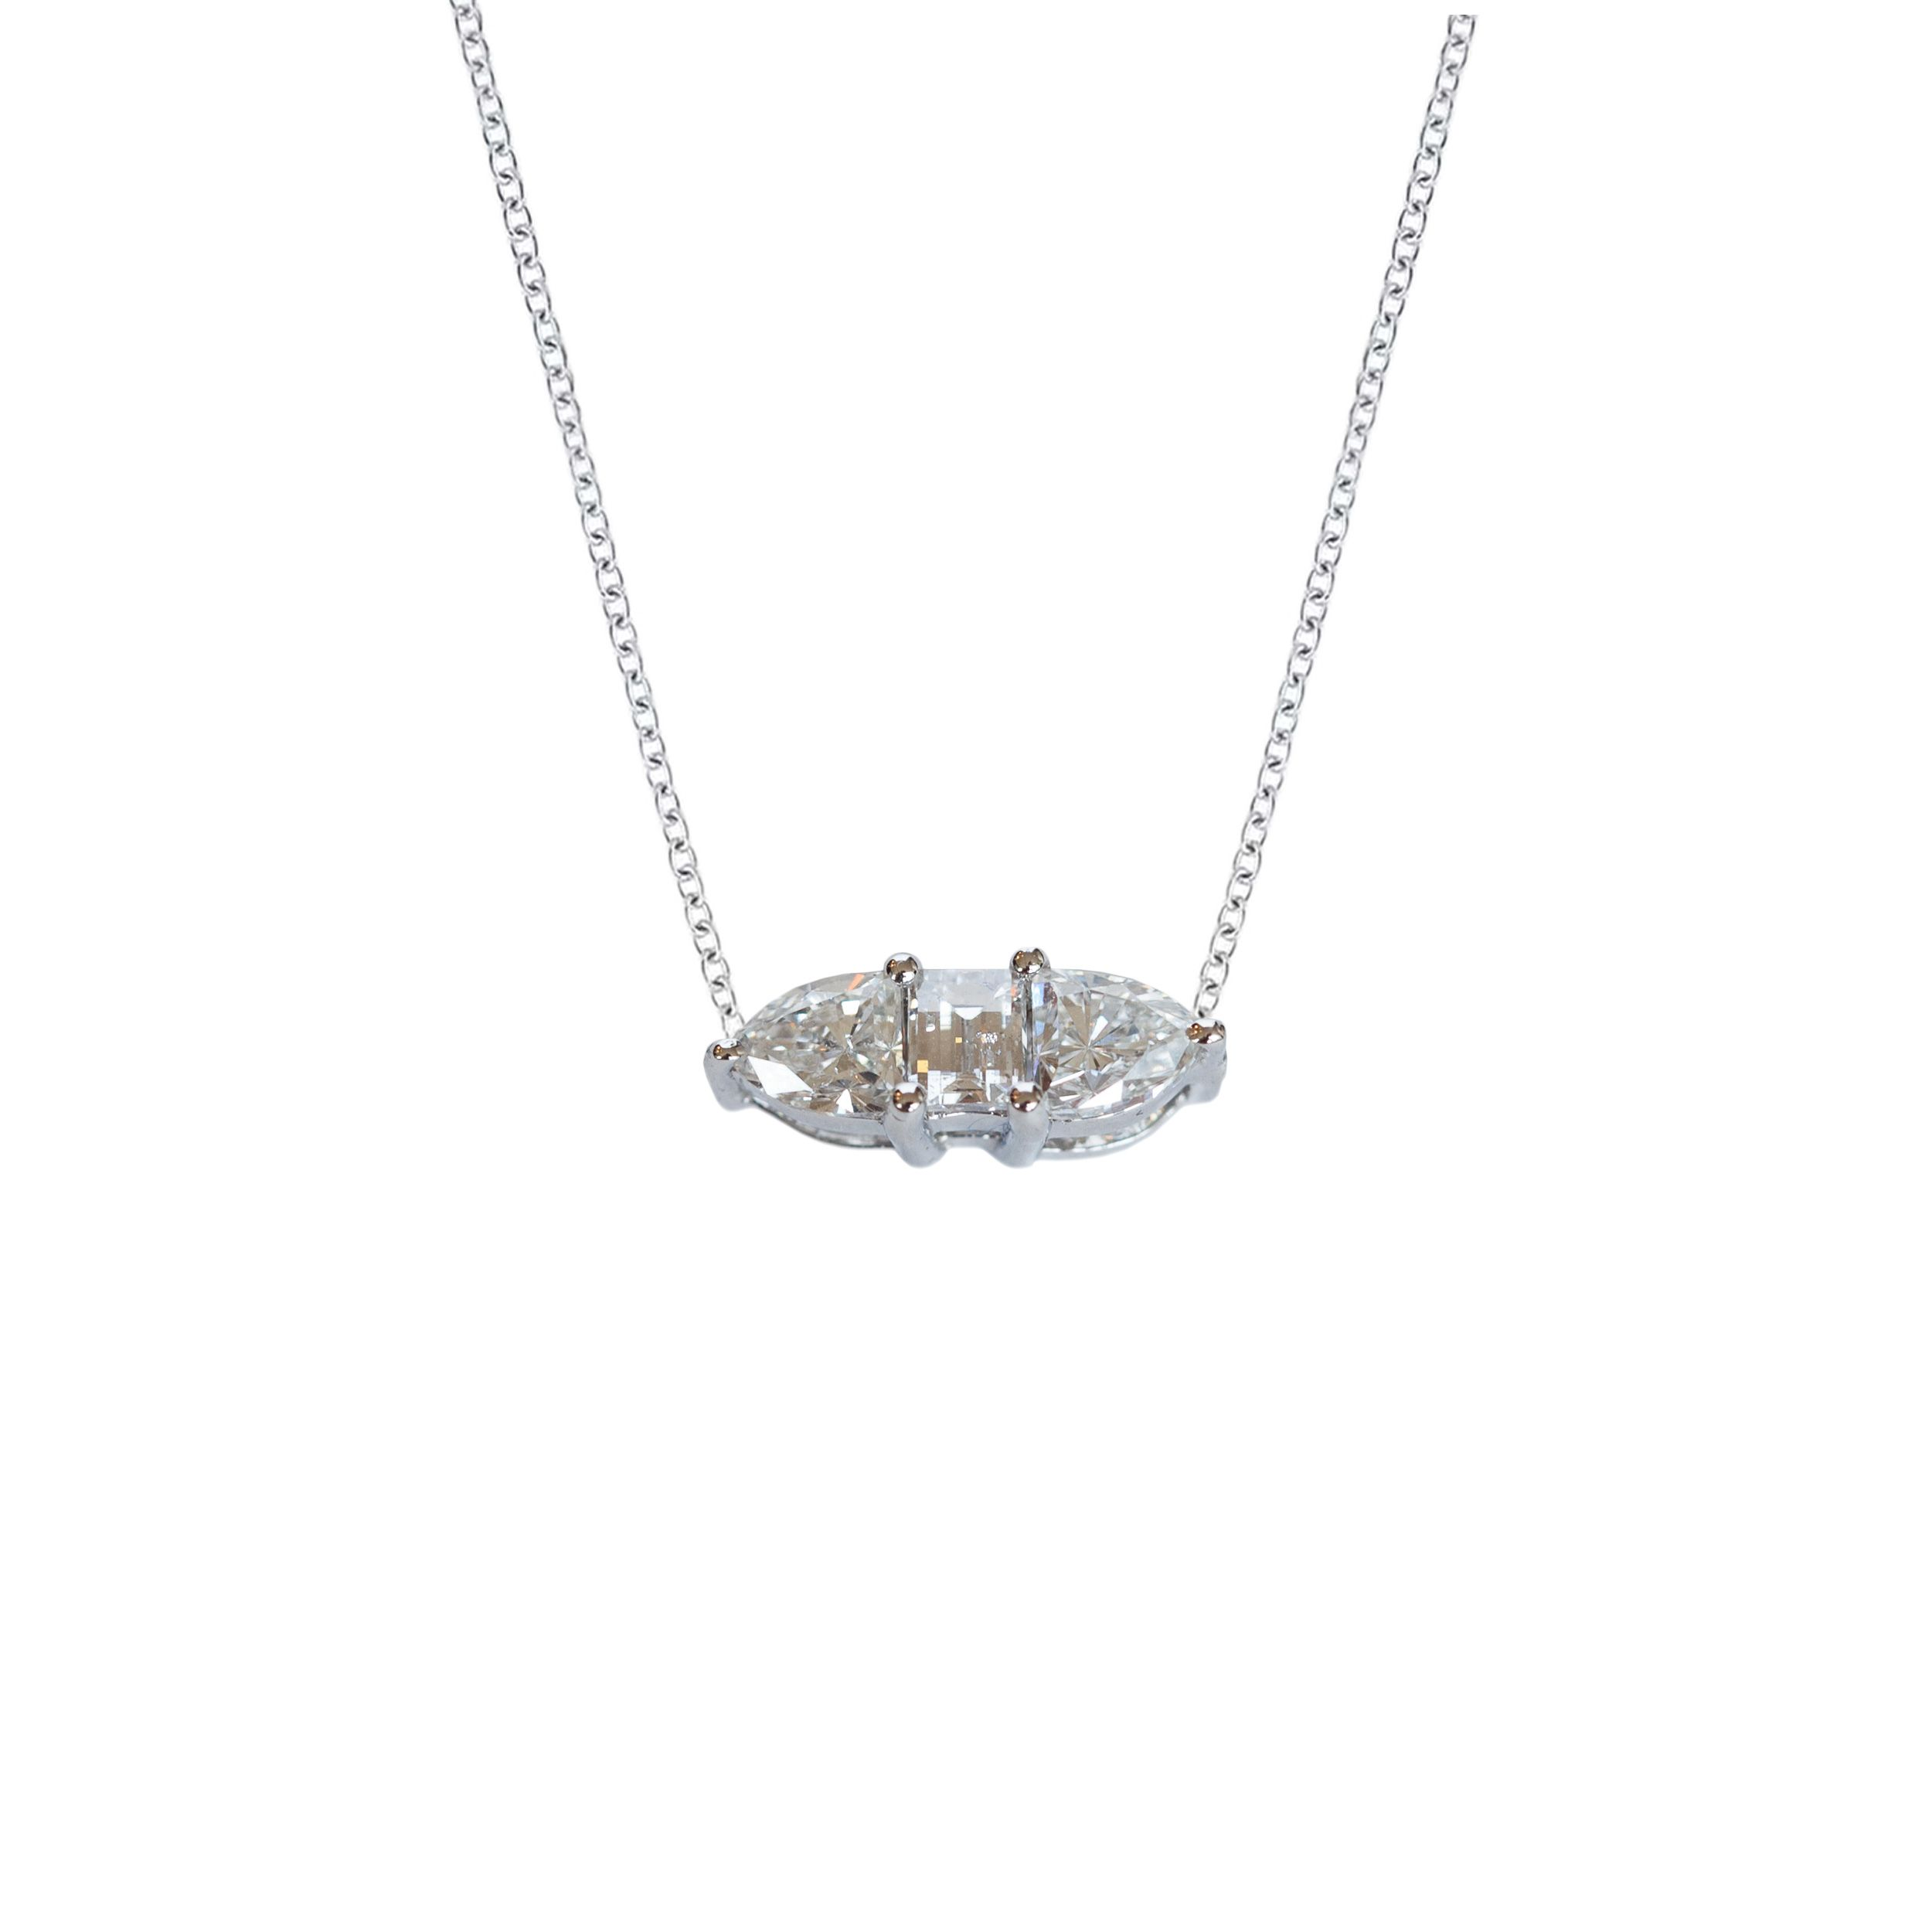 sterling grams p silver fancy drop width cut mm polished diamond weight necklace length